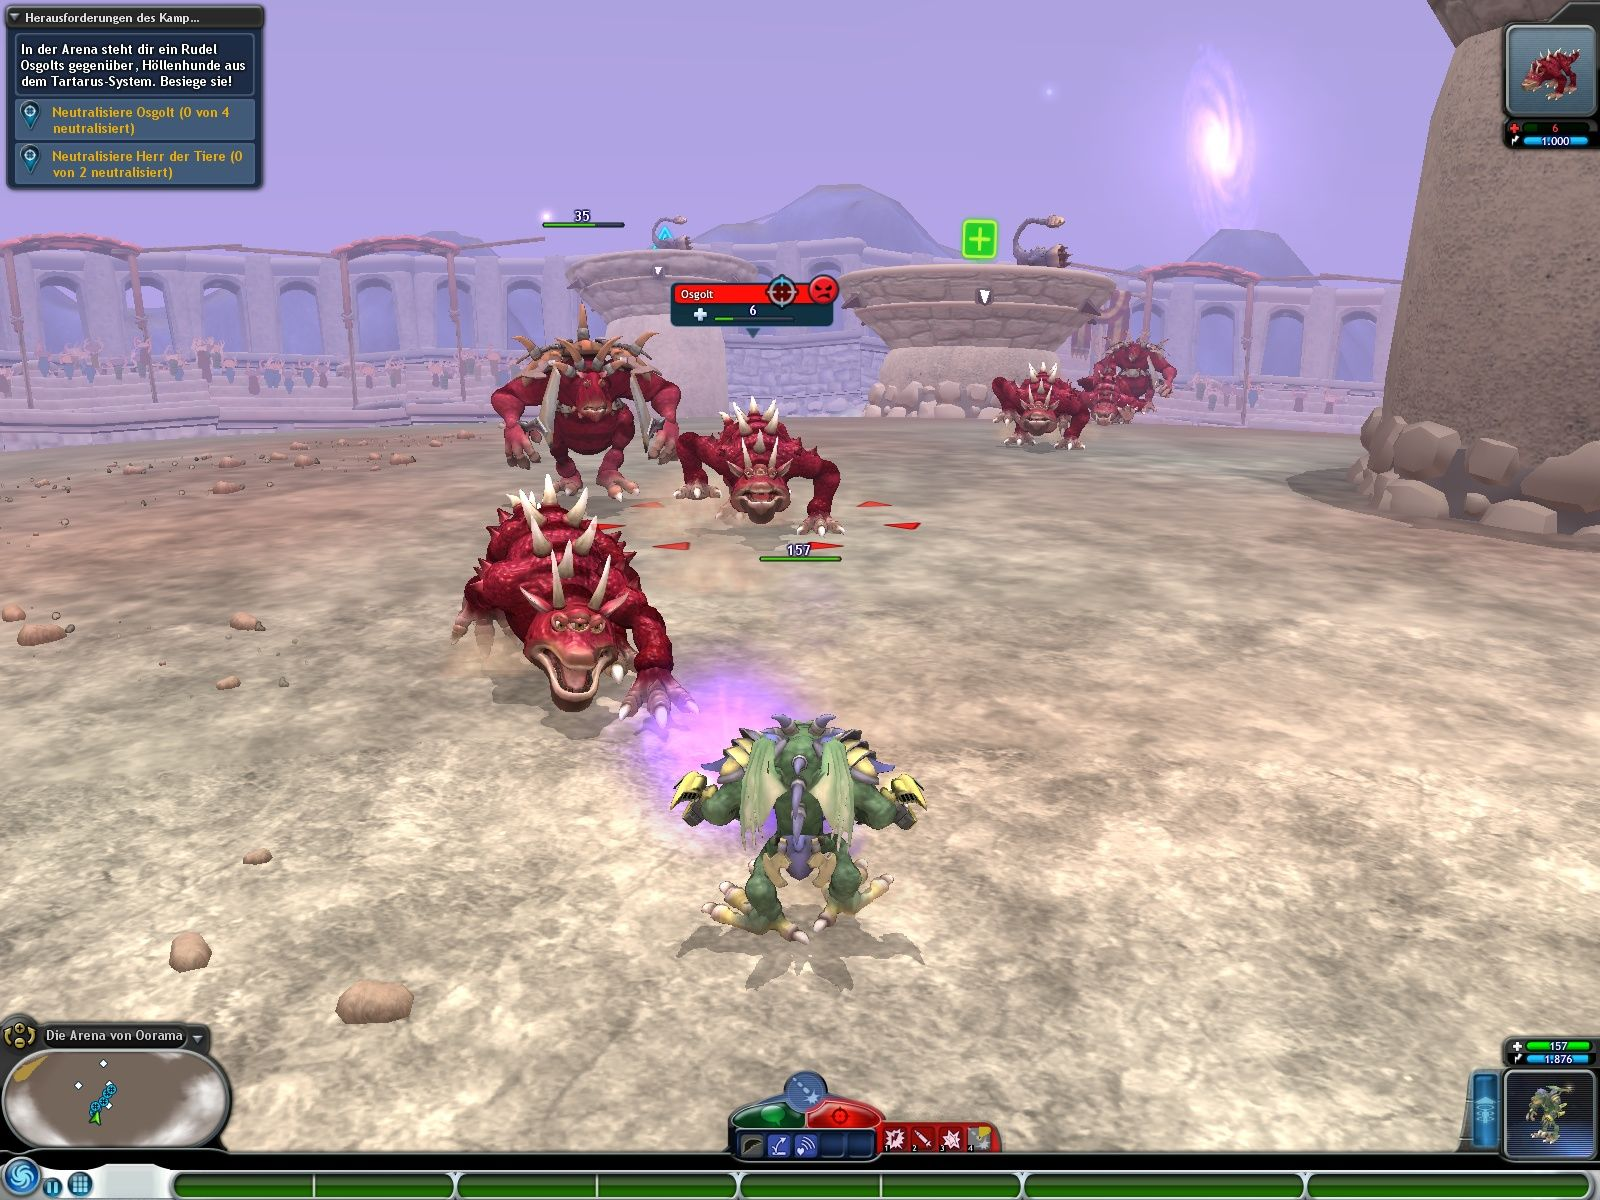 Spore: Galactic Adventures Windows Holding my own in an arena battle.